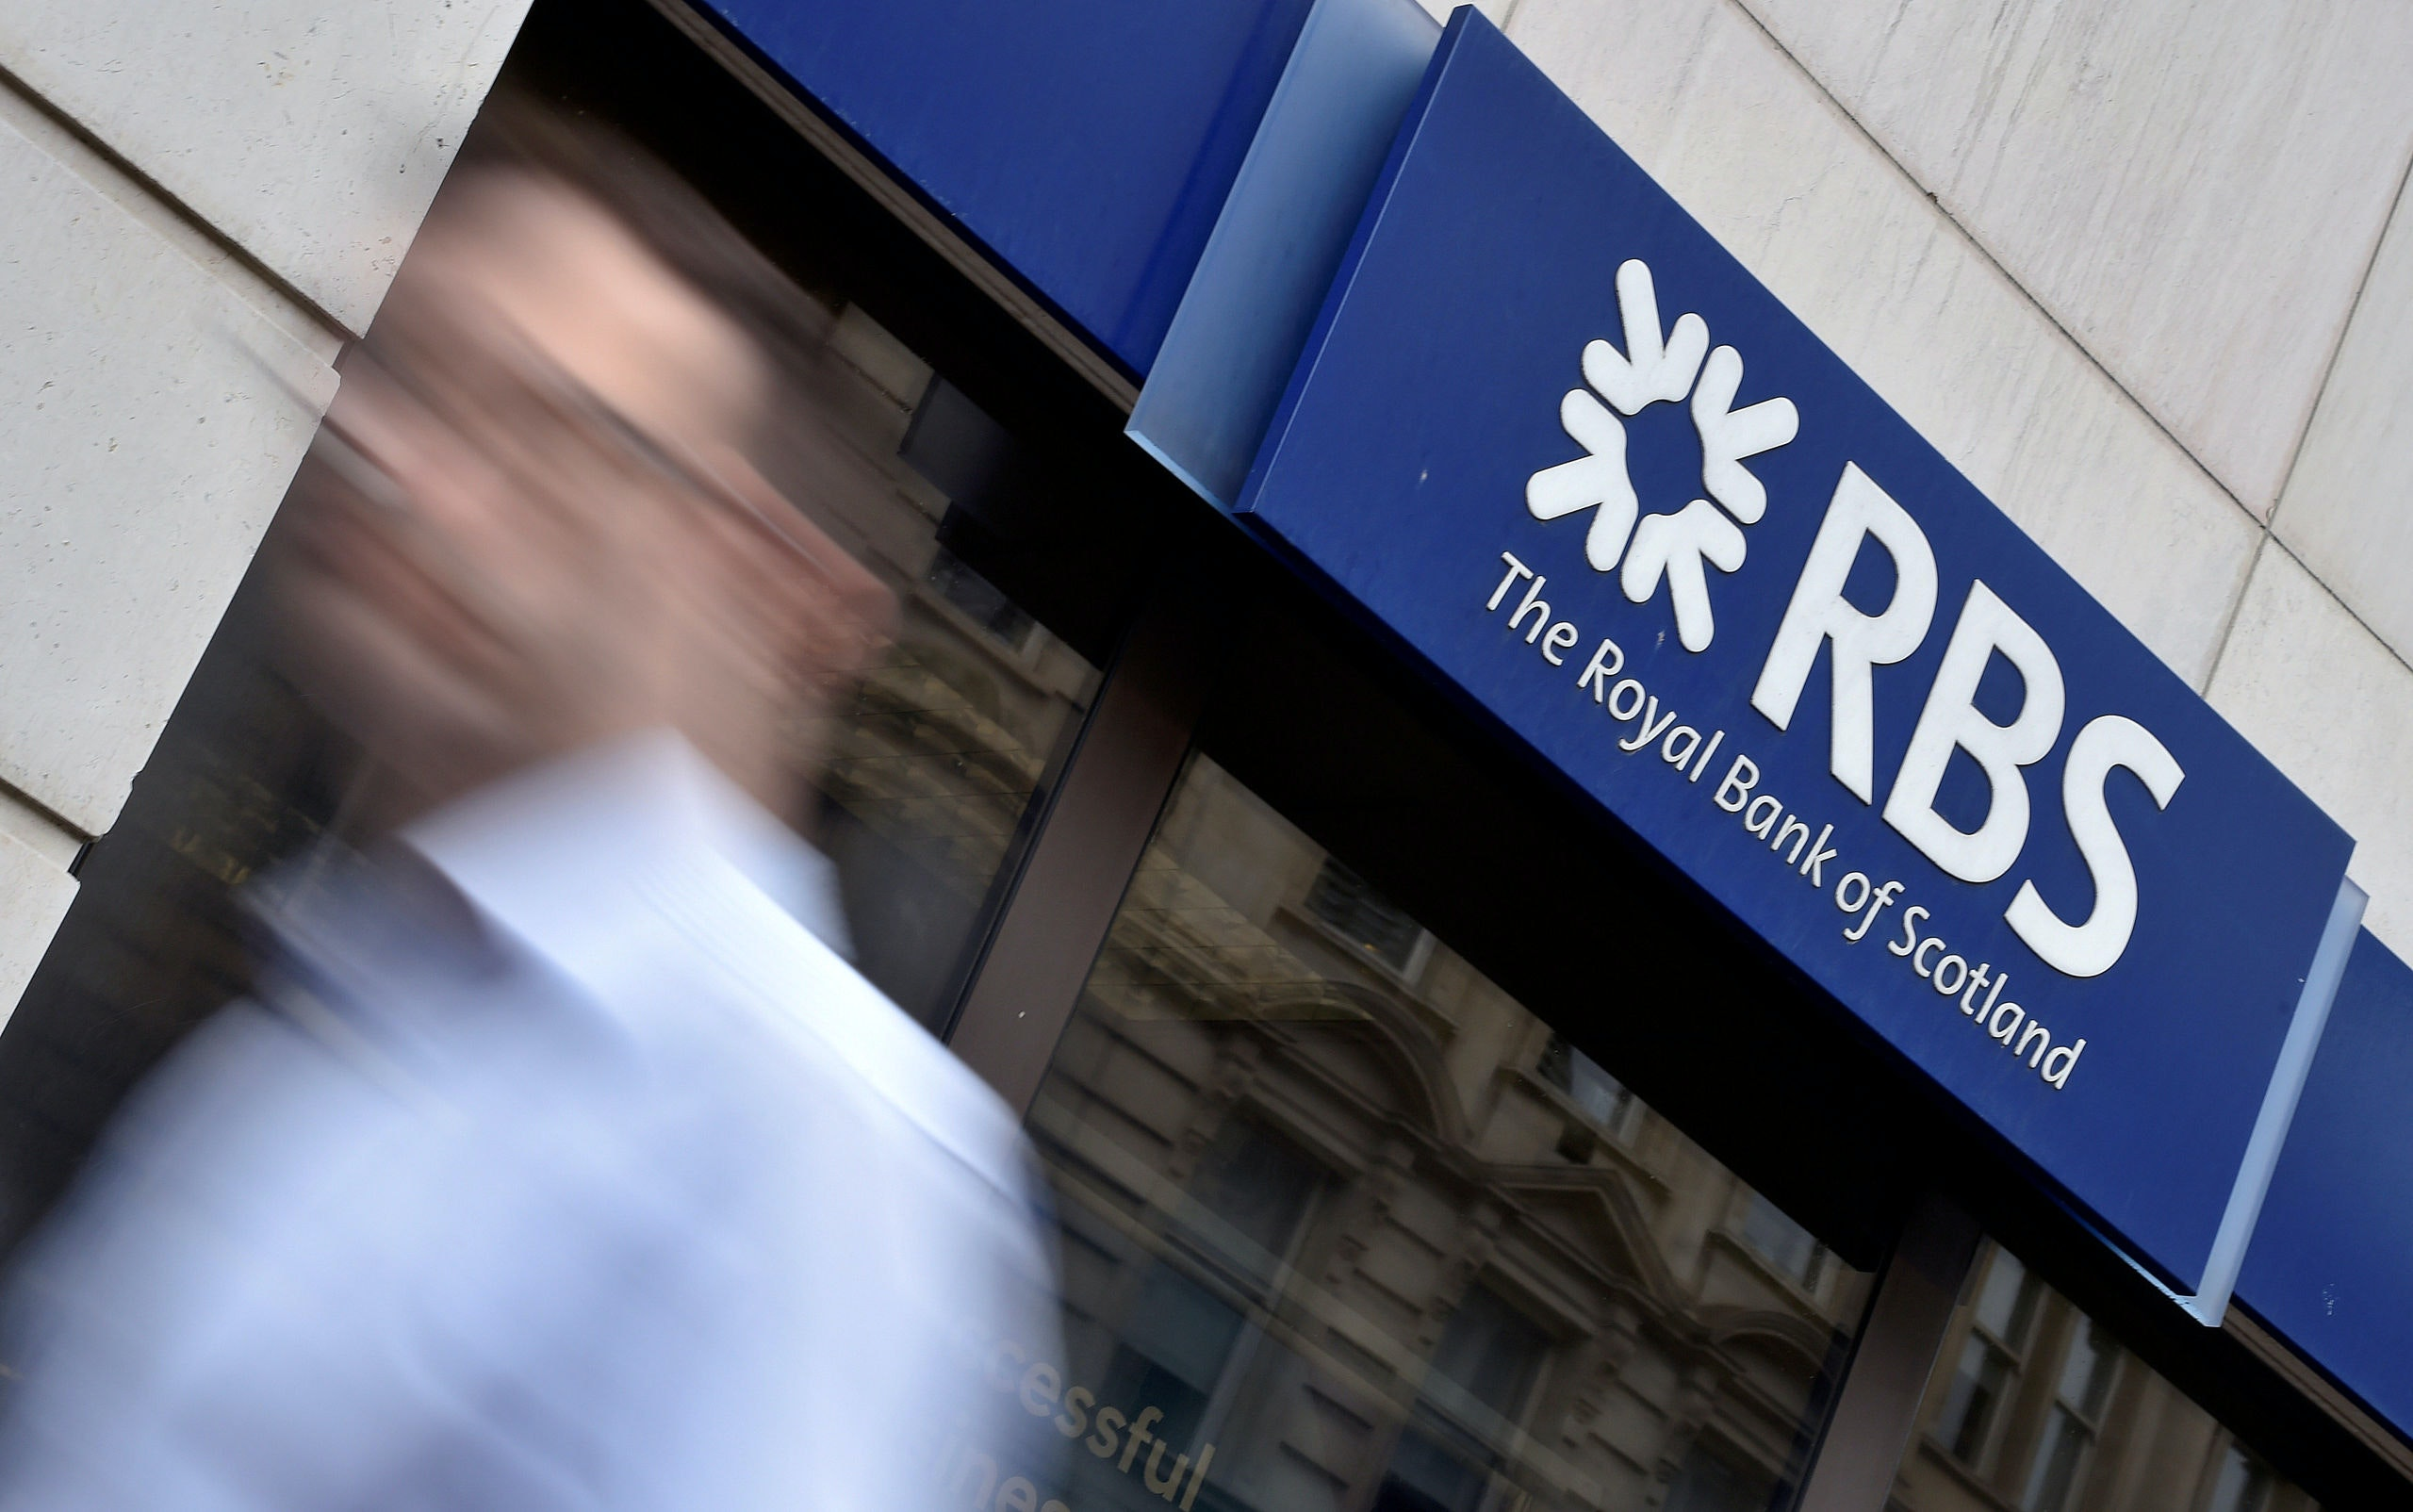 FILE PHOTO: A man walks past a branch of The Royal Bank of Scotland (RBS) in central London, Britain August 27, 2014. REUTERS/Toby Melville/File Photo